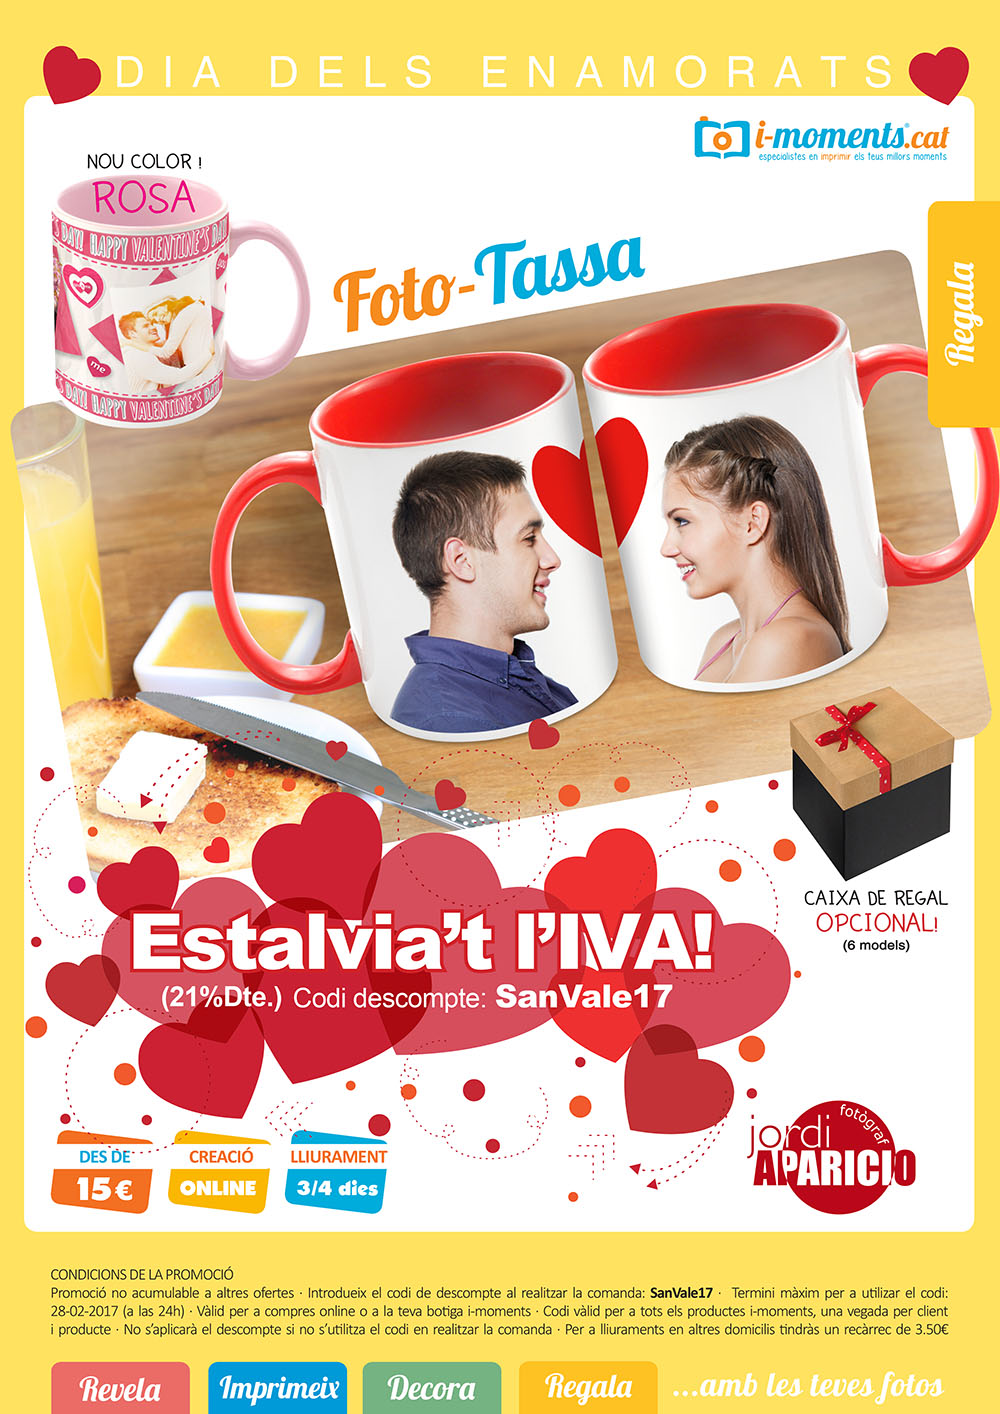 Regala Tasses per Sant Valentí amb i-moments